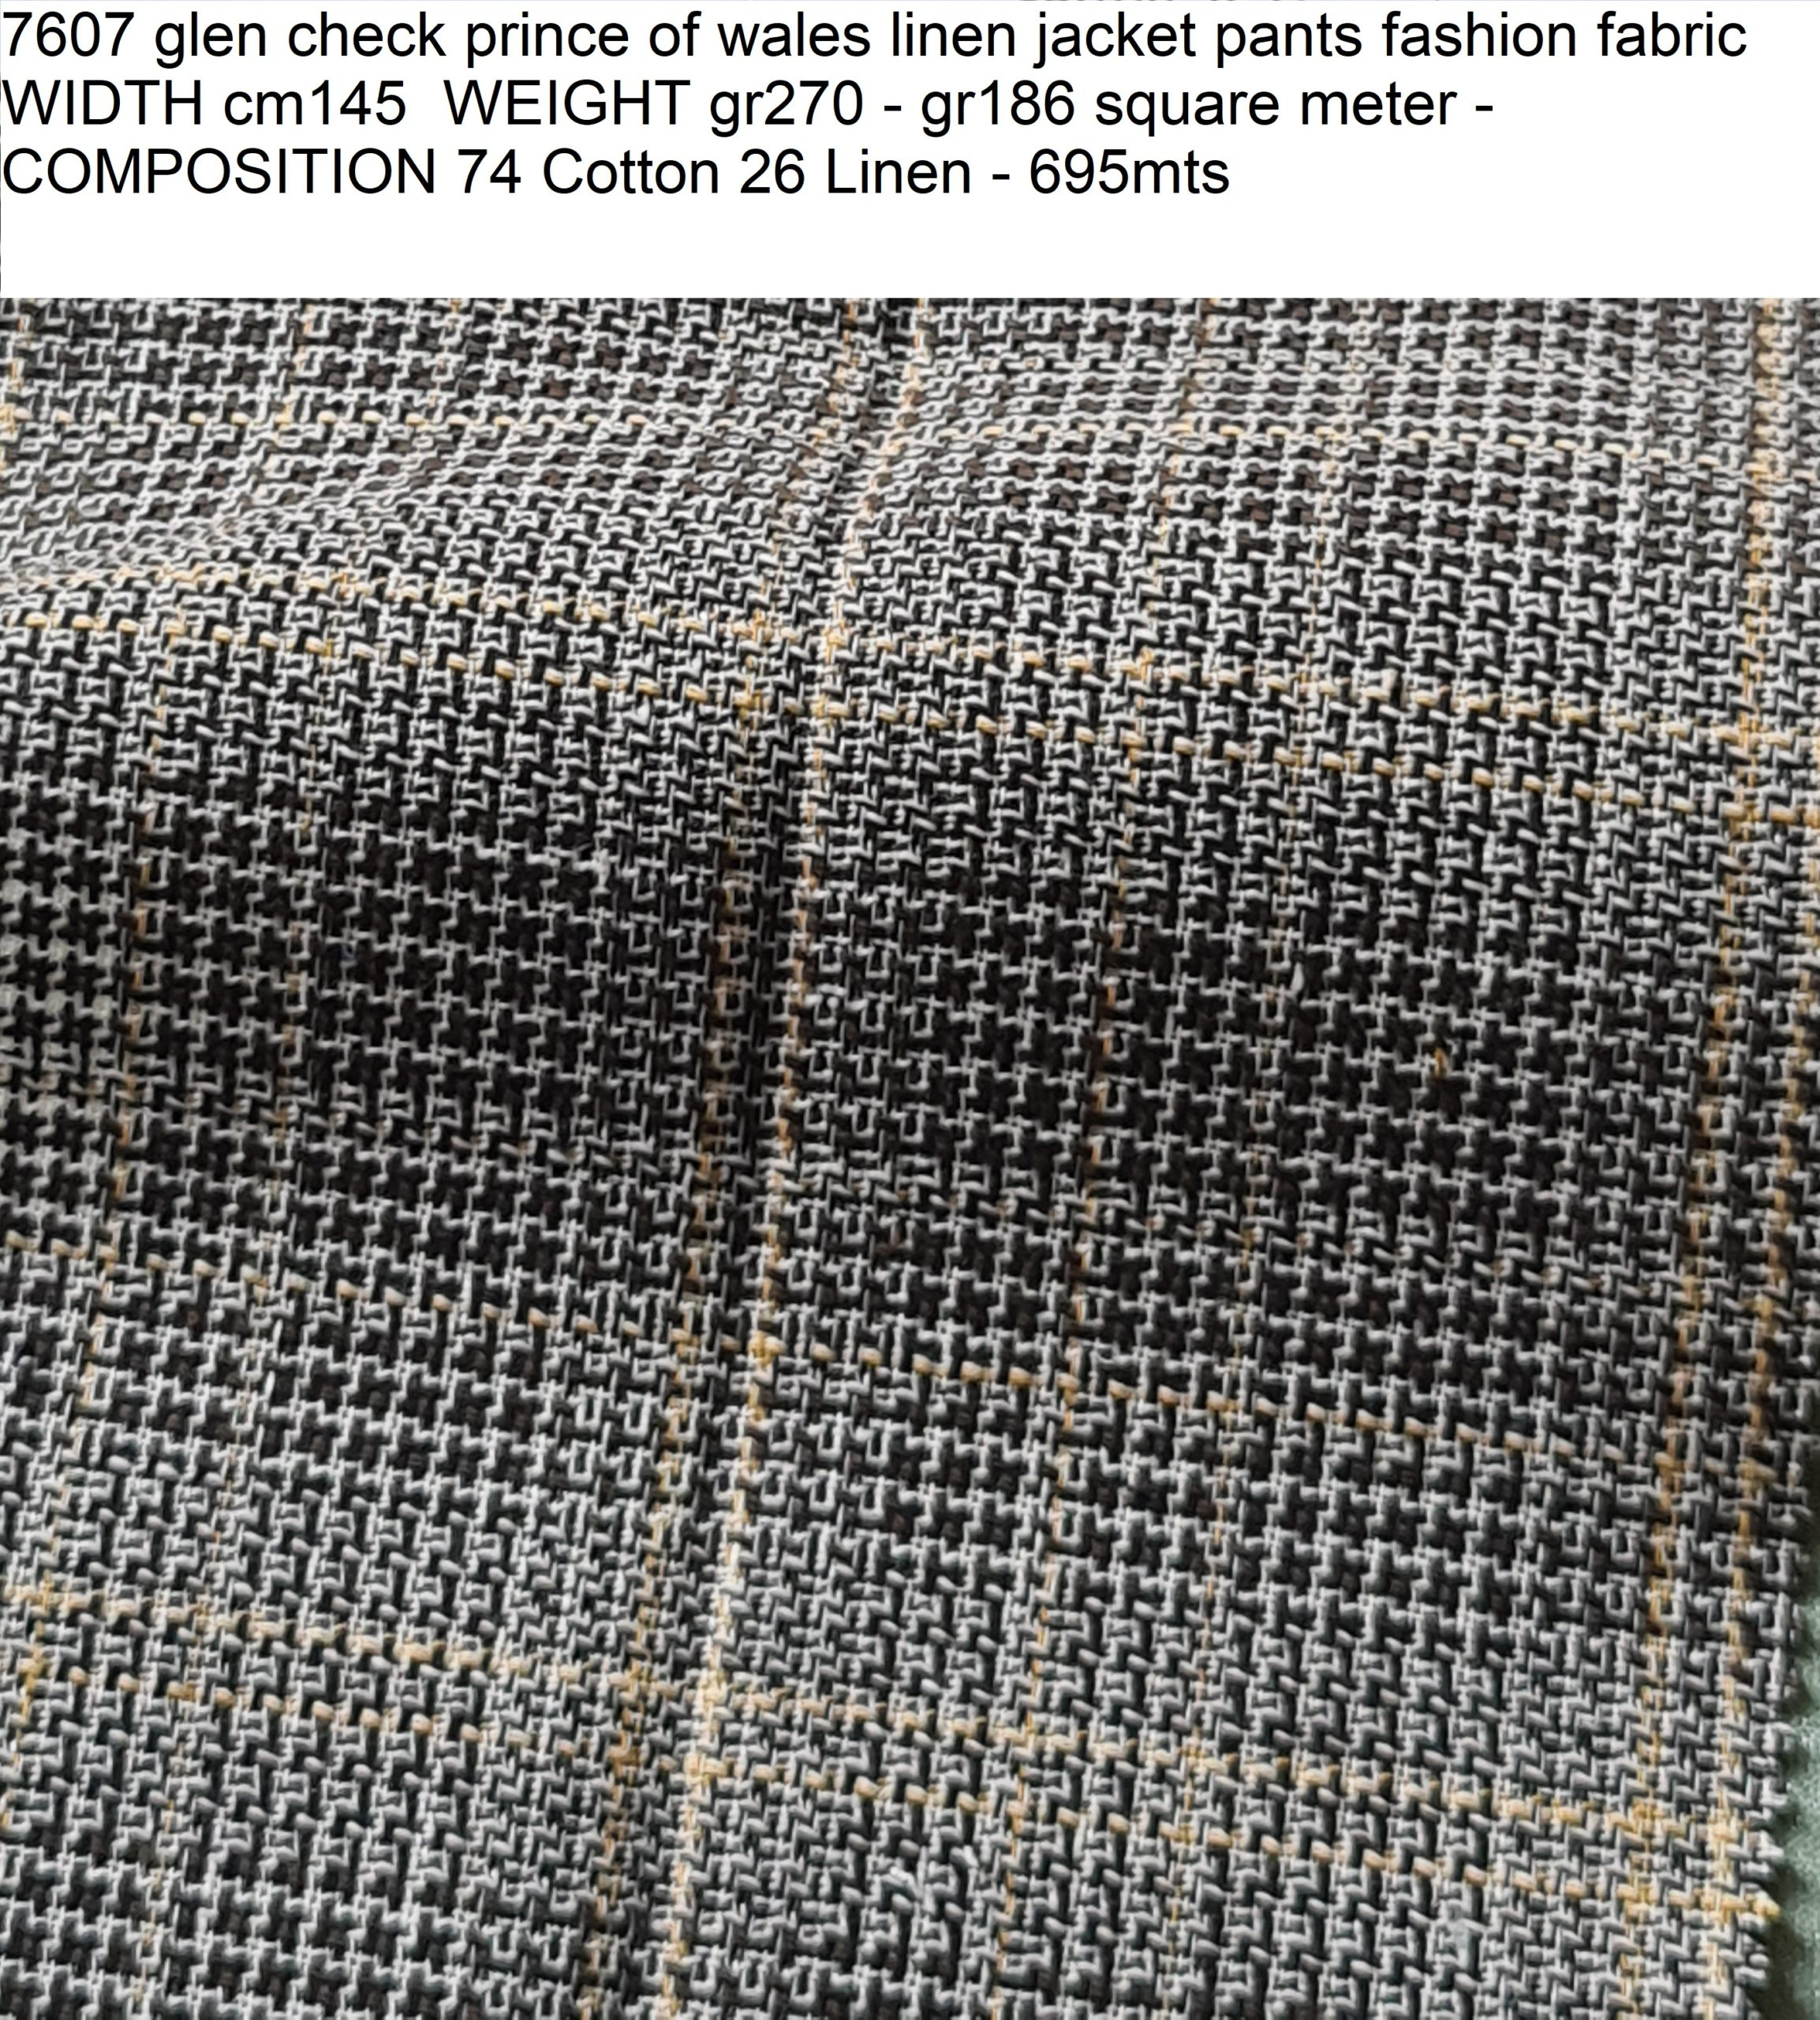 7607 glen check prince of wales linen jacket pants fashion fabric WIDTH cm145 WEIGHT gr270 - gr186 square meter - COMPOSITION 74 Cotton 26 Linen - 695mts